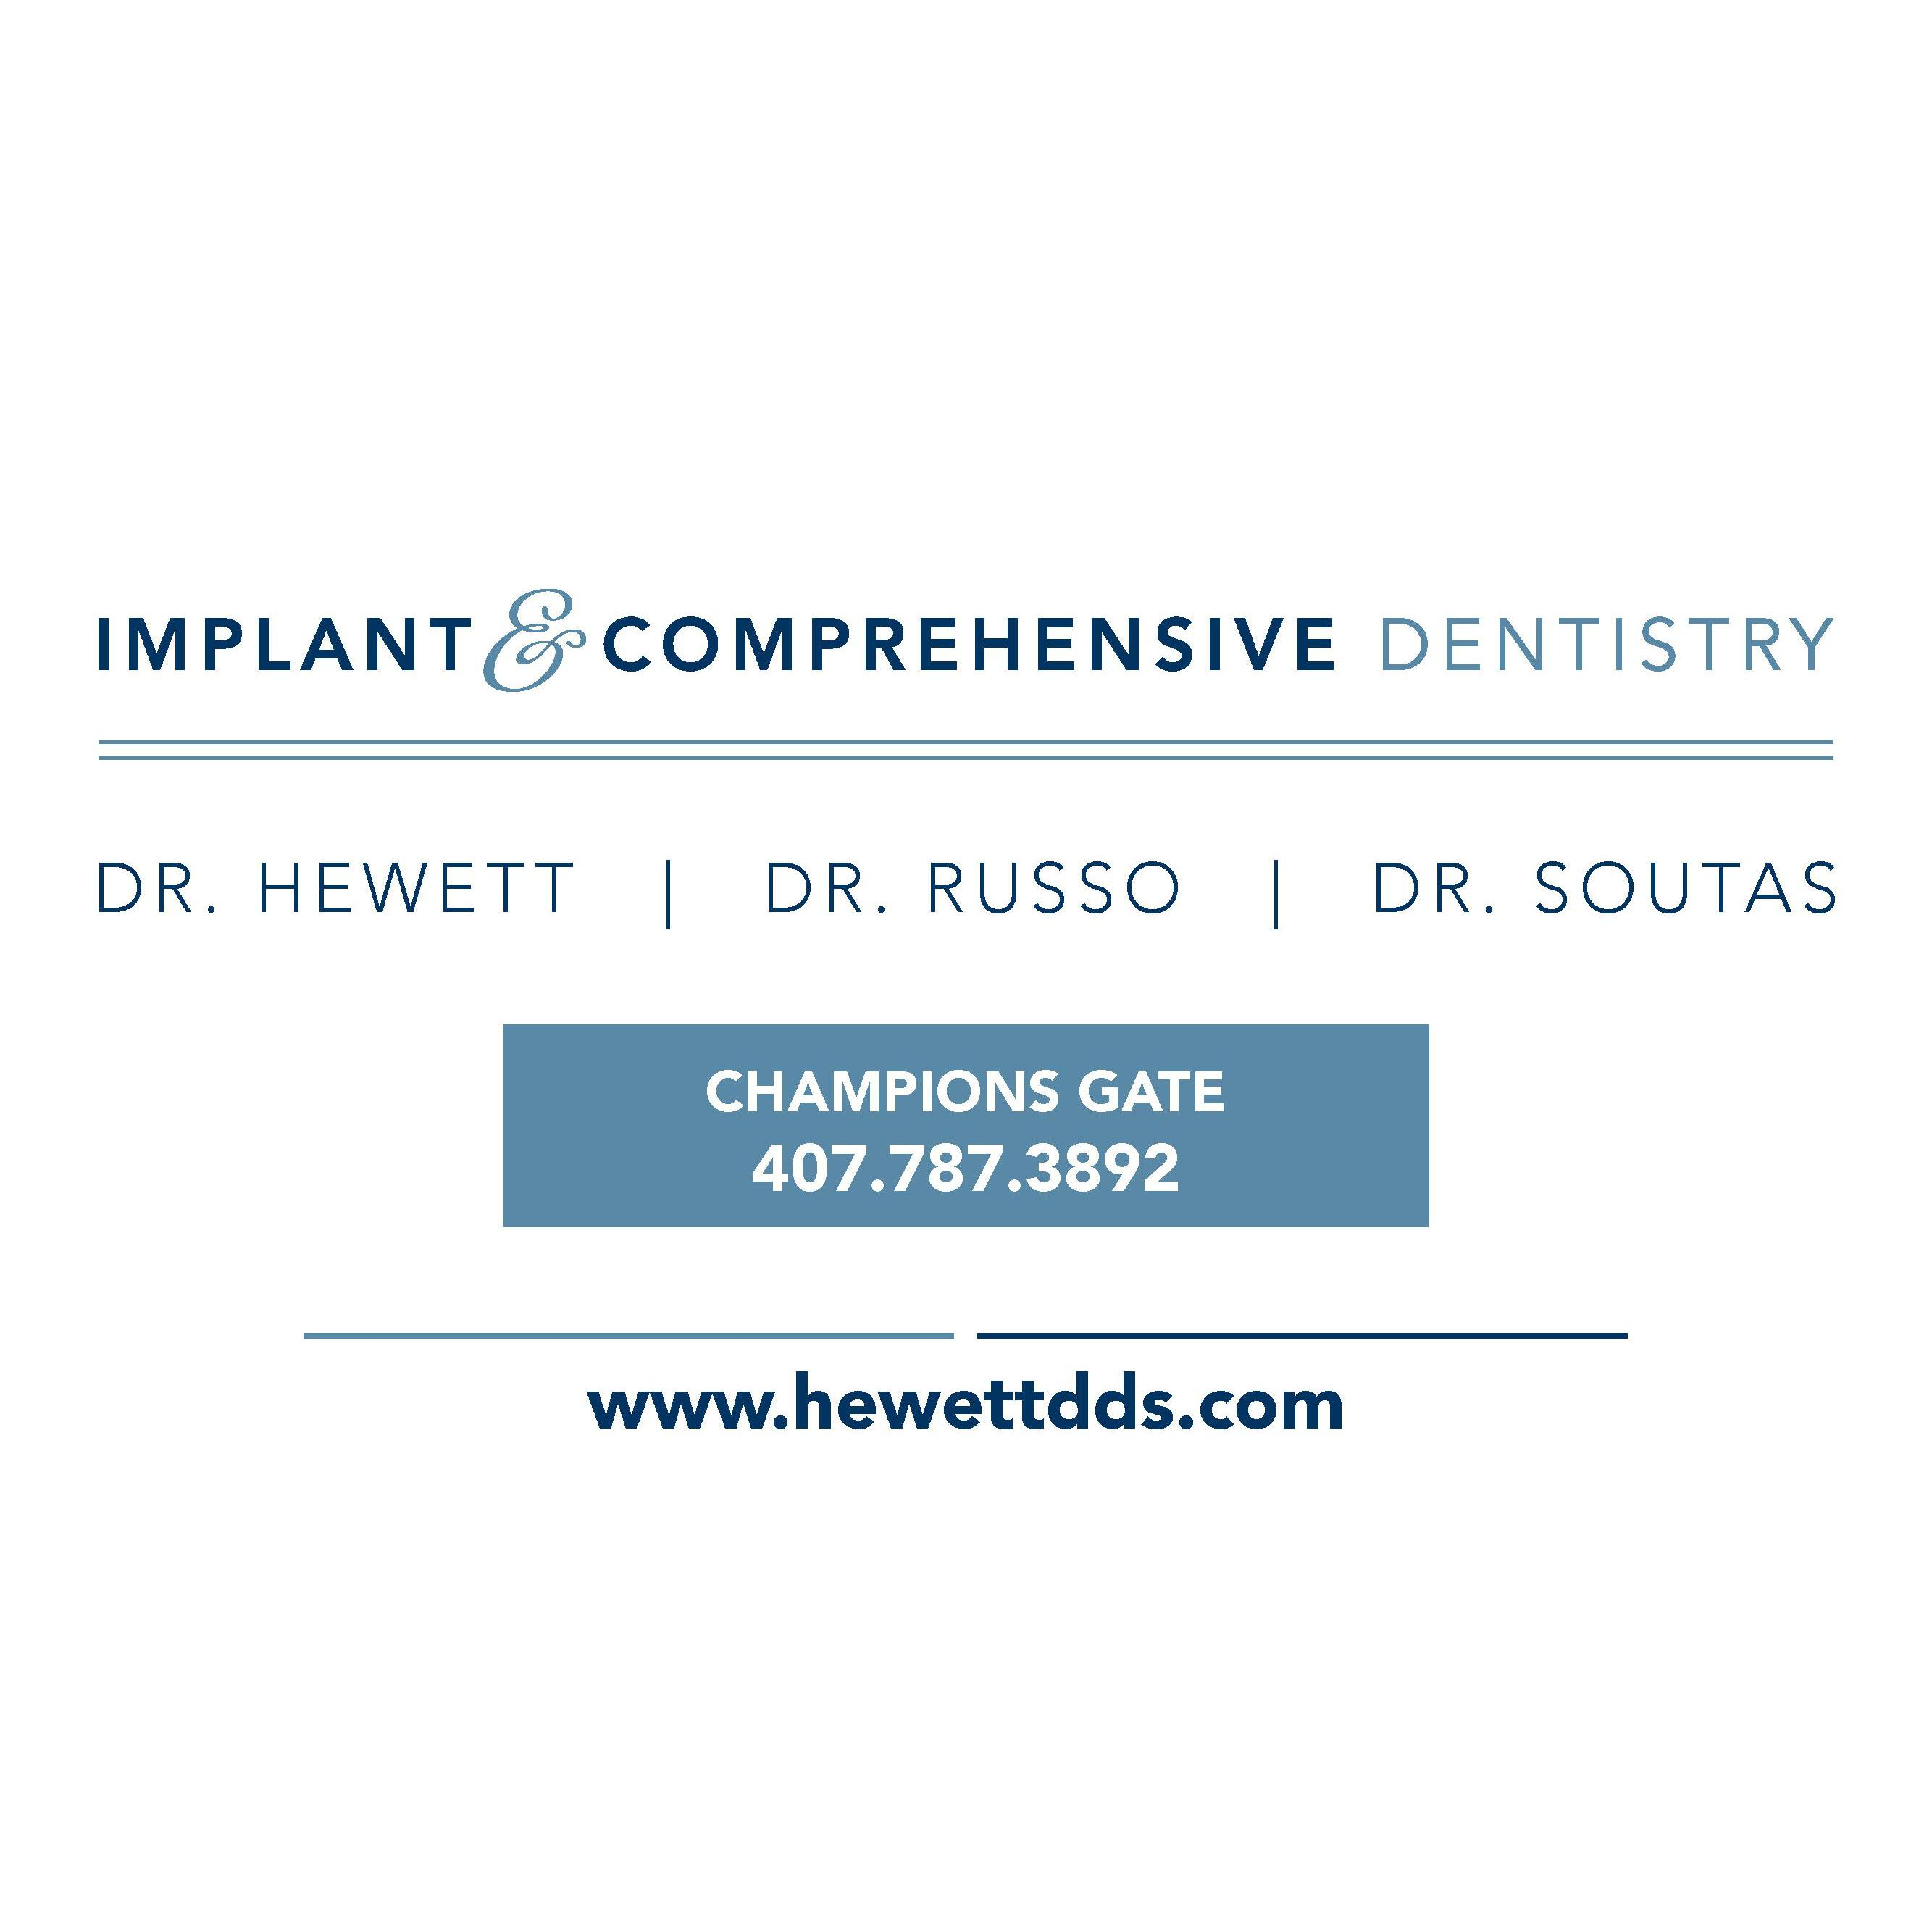 Implant & Comprehensive Dentistry